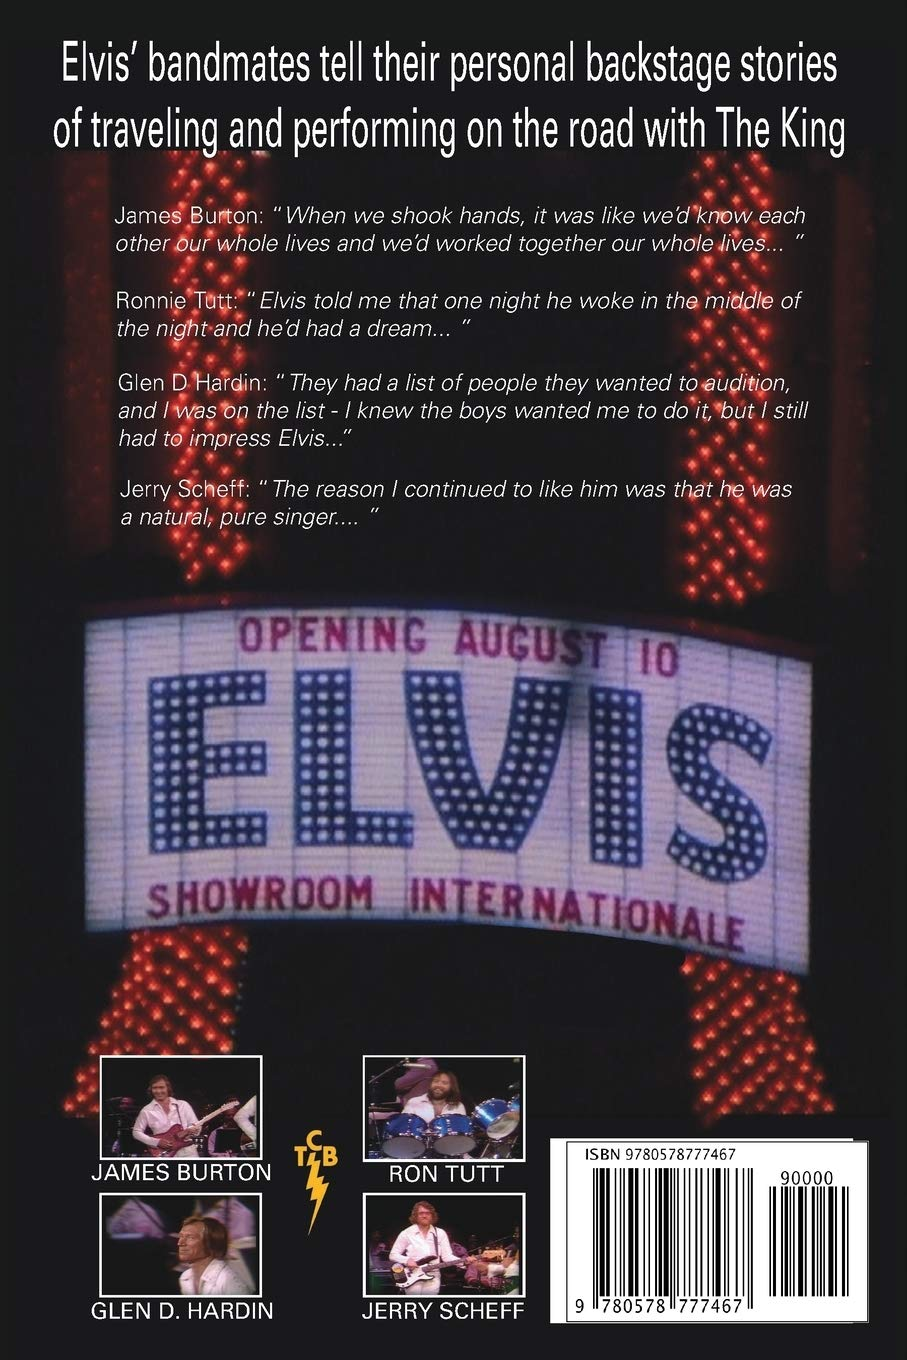 On Stage With ELVIS PRESLEY: The backstage stories of Elvis ...